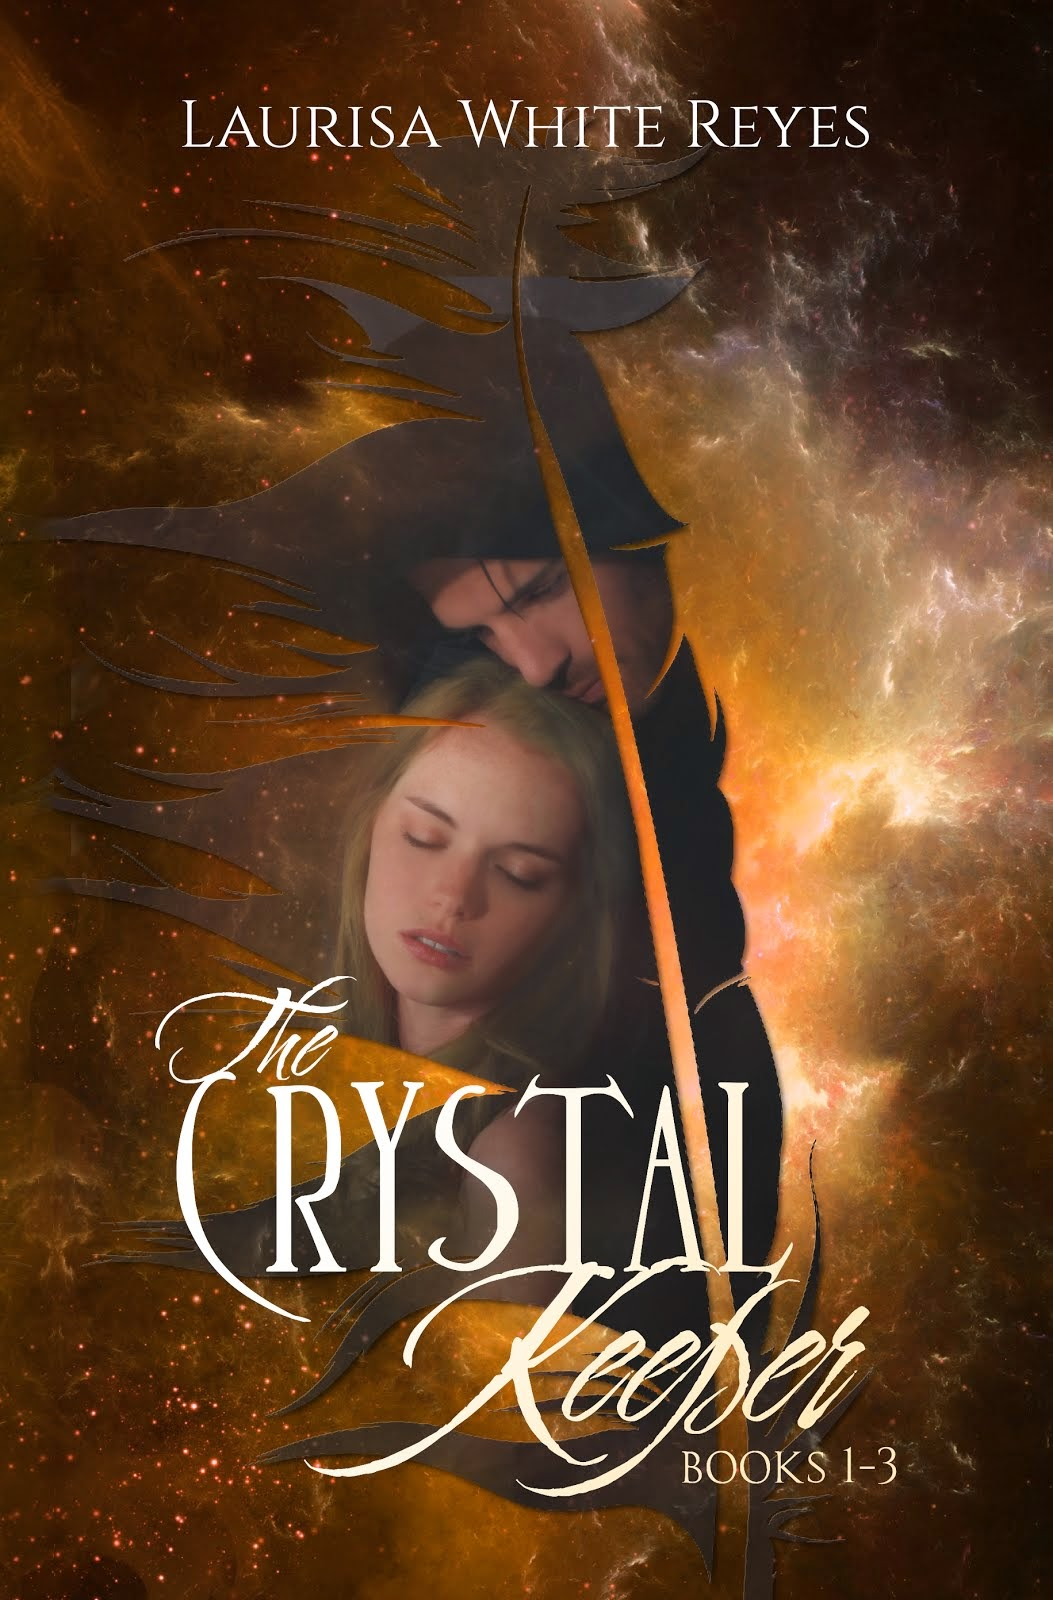 The Crystal Keeper Omnibus (#s 1-3)